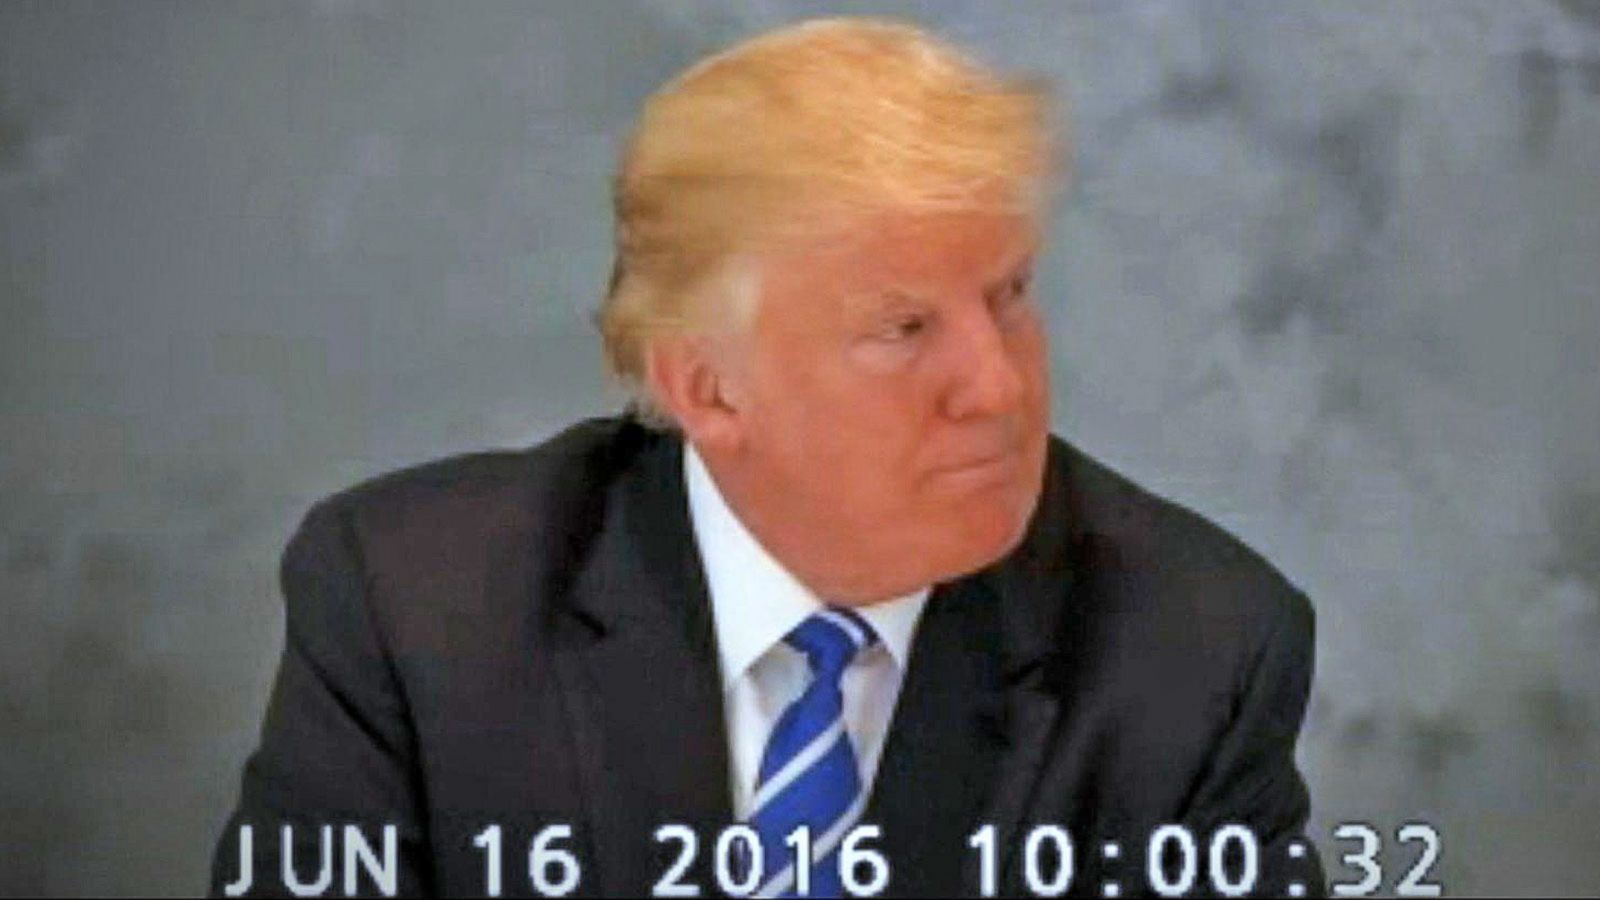 VIDEO: Donald Trump Deposition Video in Hotel Lawsuit is Released